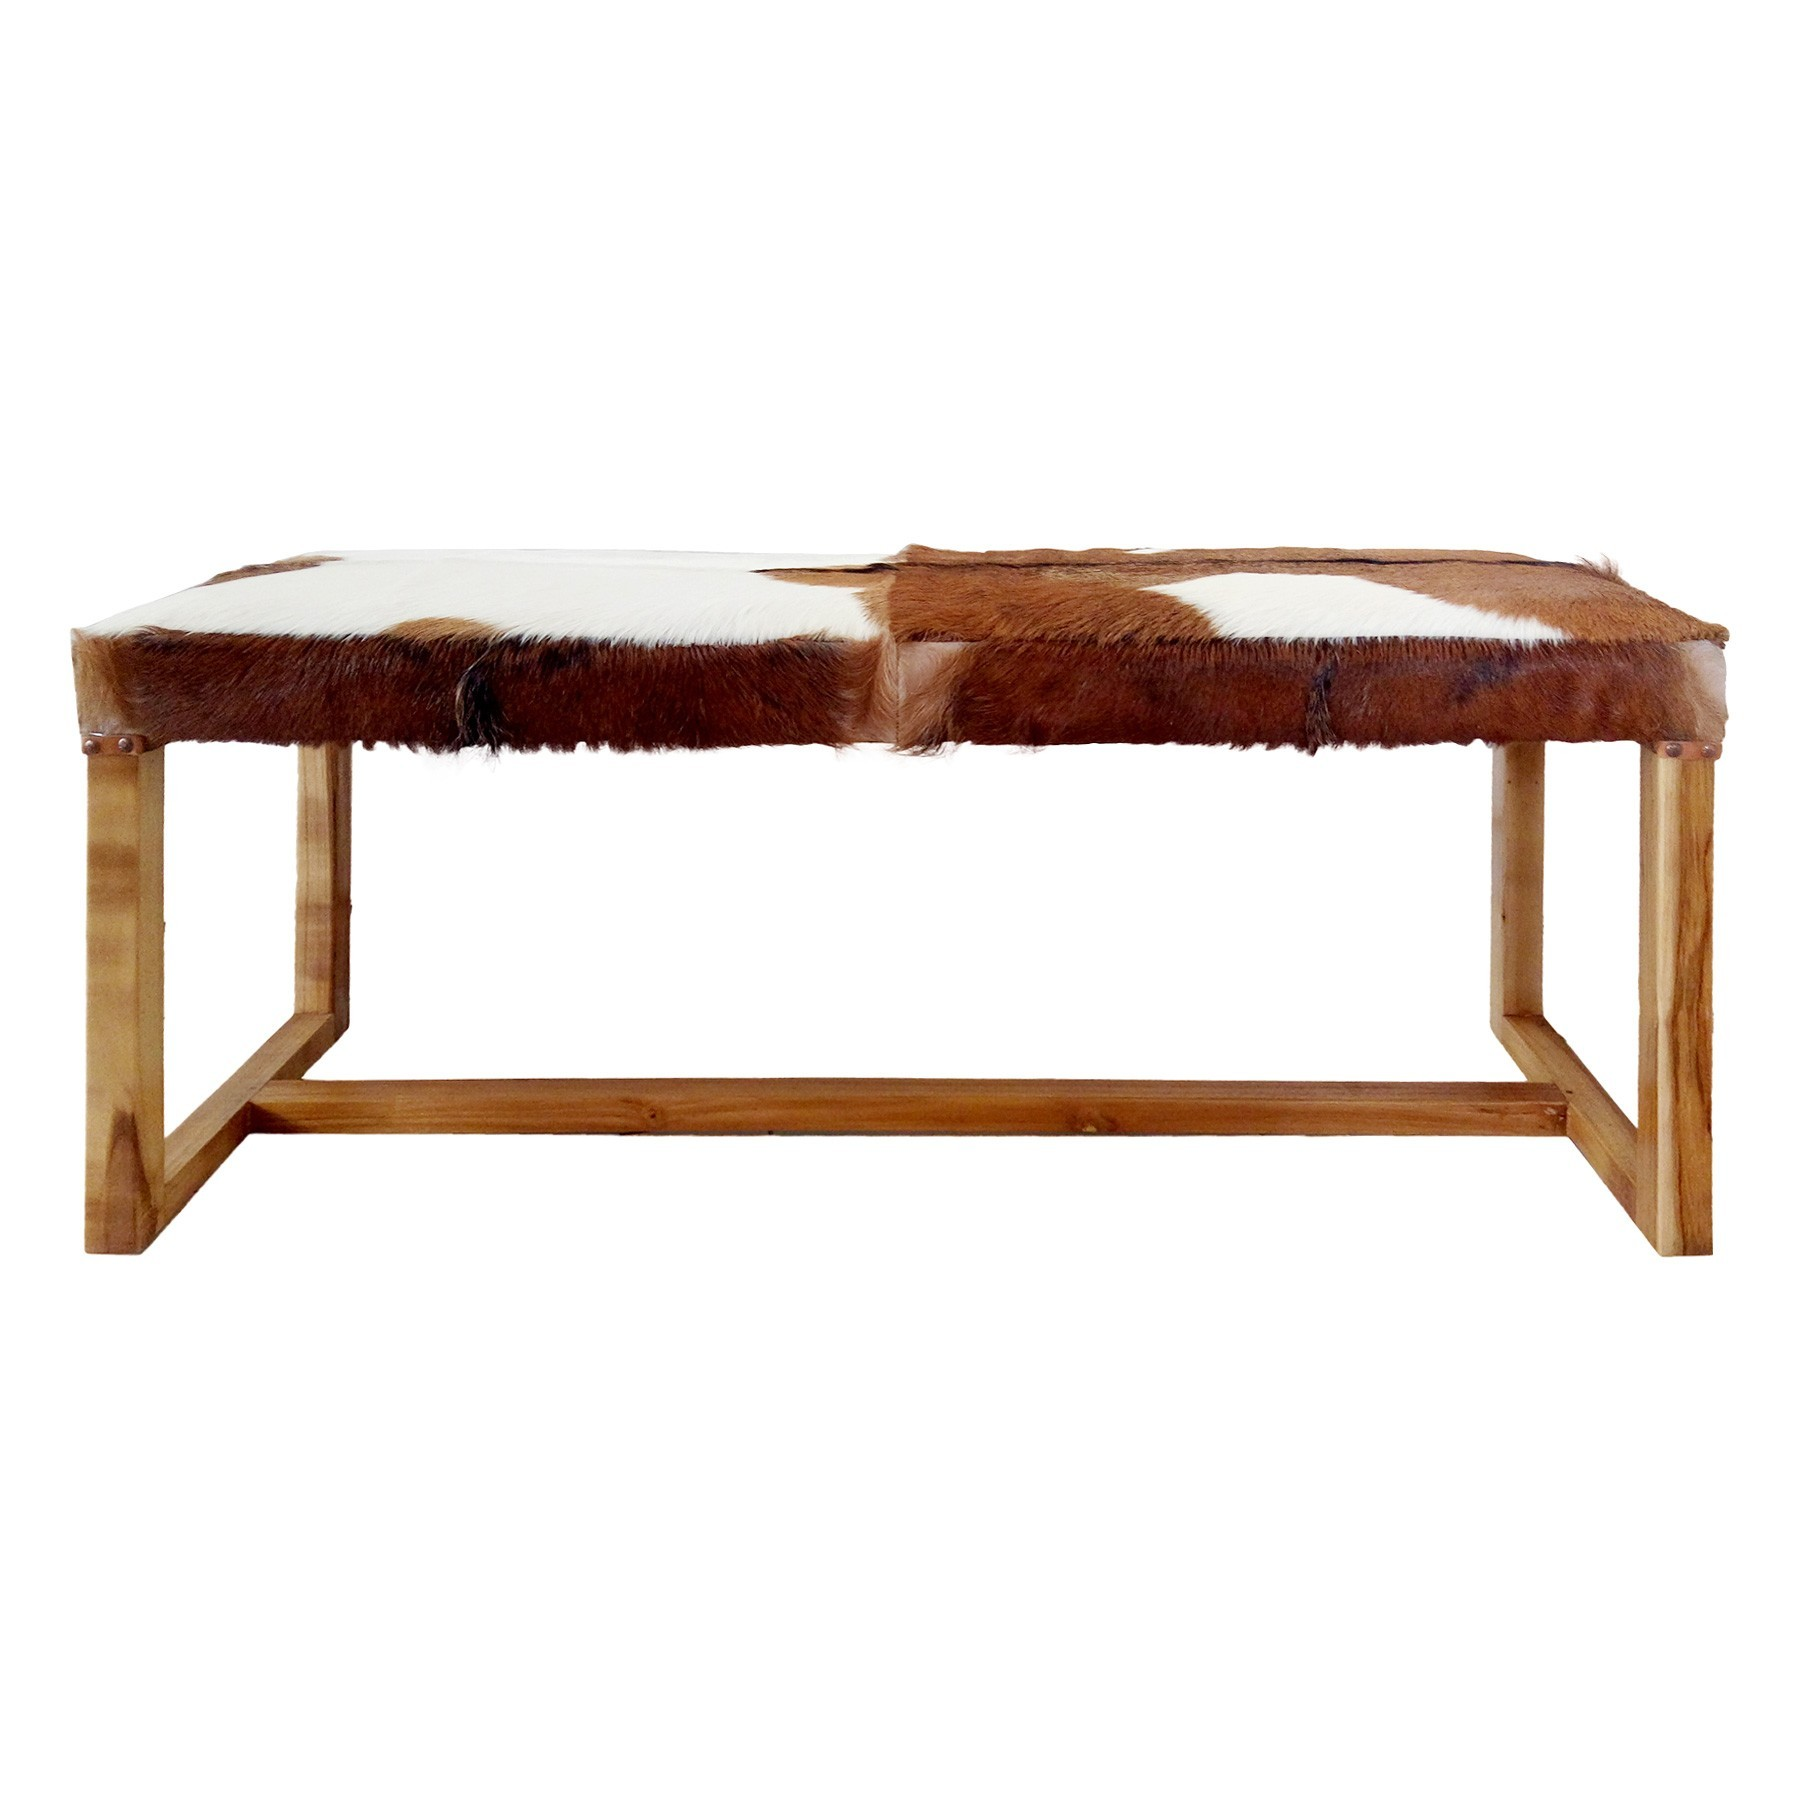 Northman Goat Hide & Teak Timber Bench, 120cm